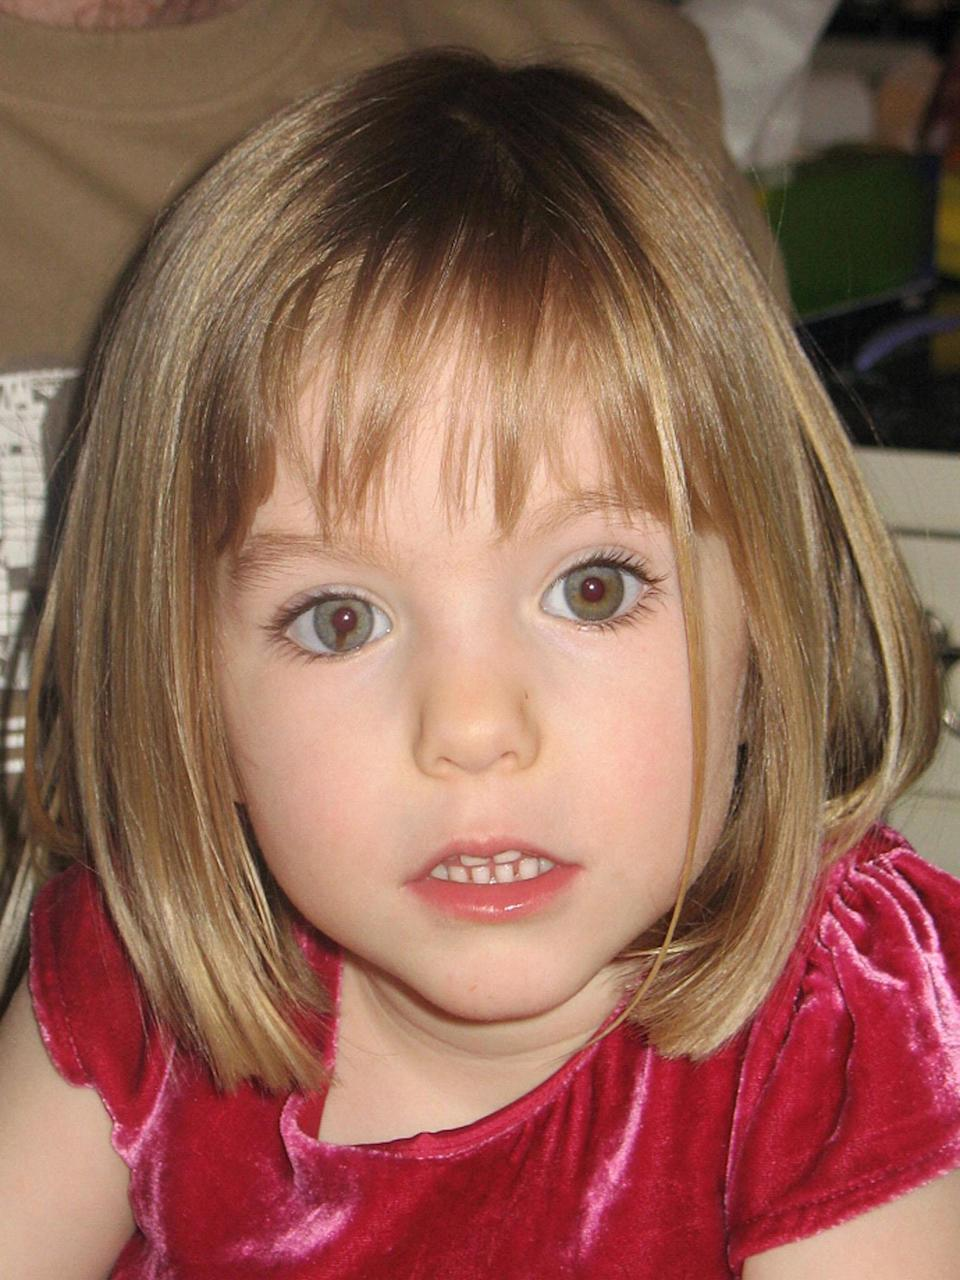 In 2007, then three-year-old Madeleine McCann vanished from her holiday apartment in the Portugal. Source: Pa